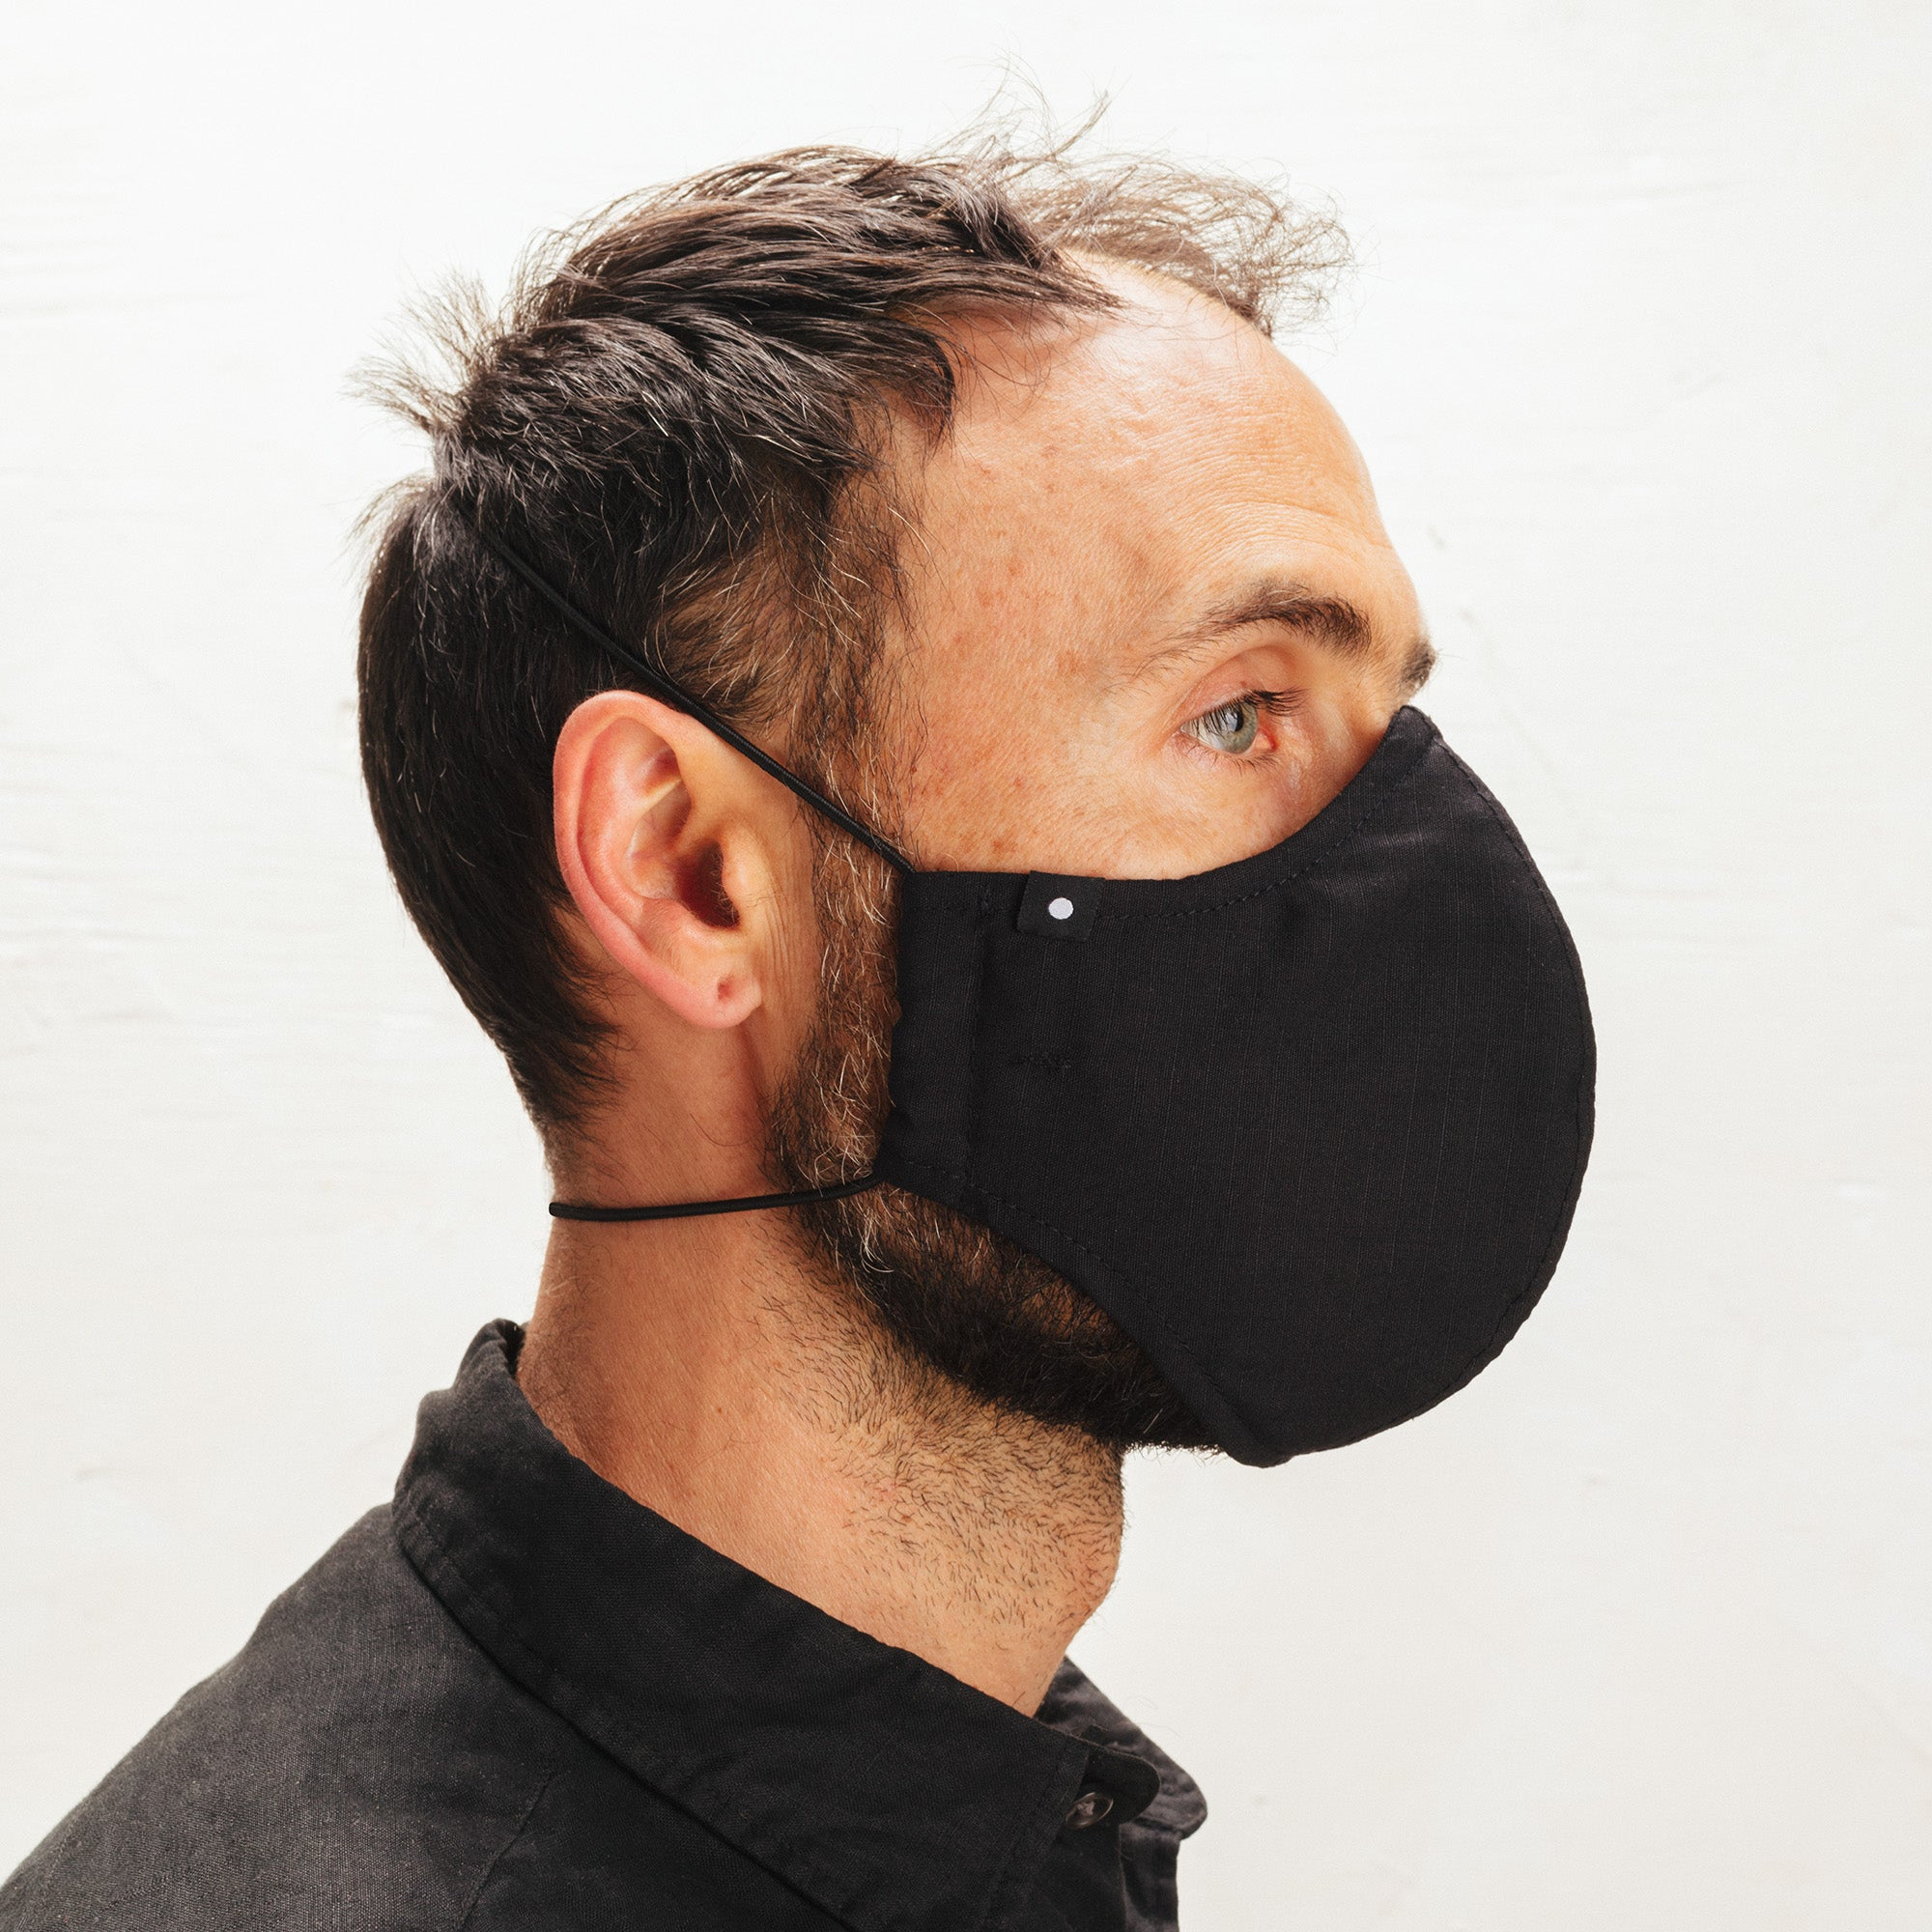 The Curve Mask - Black w/Shock Cord